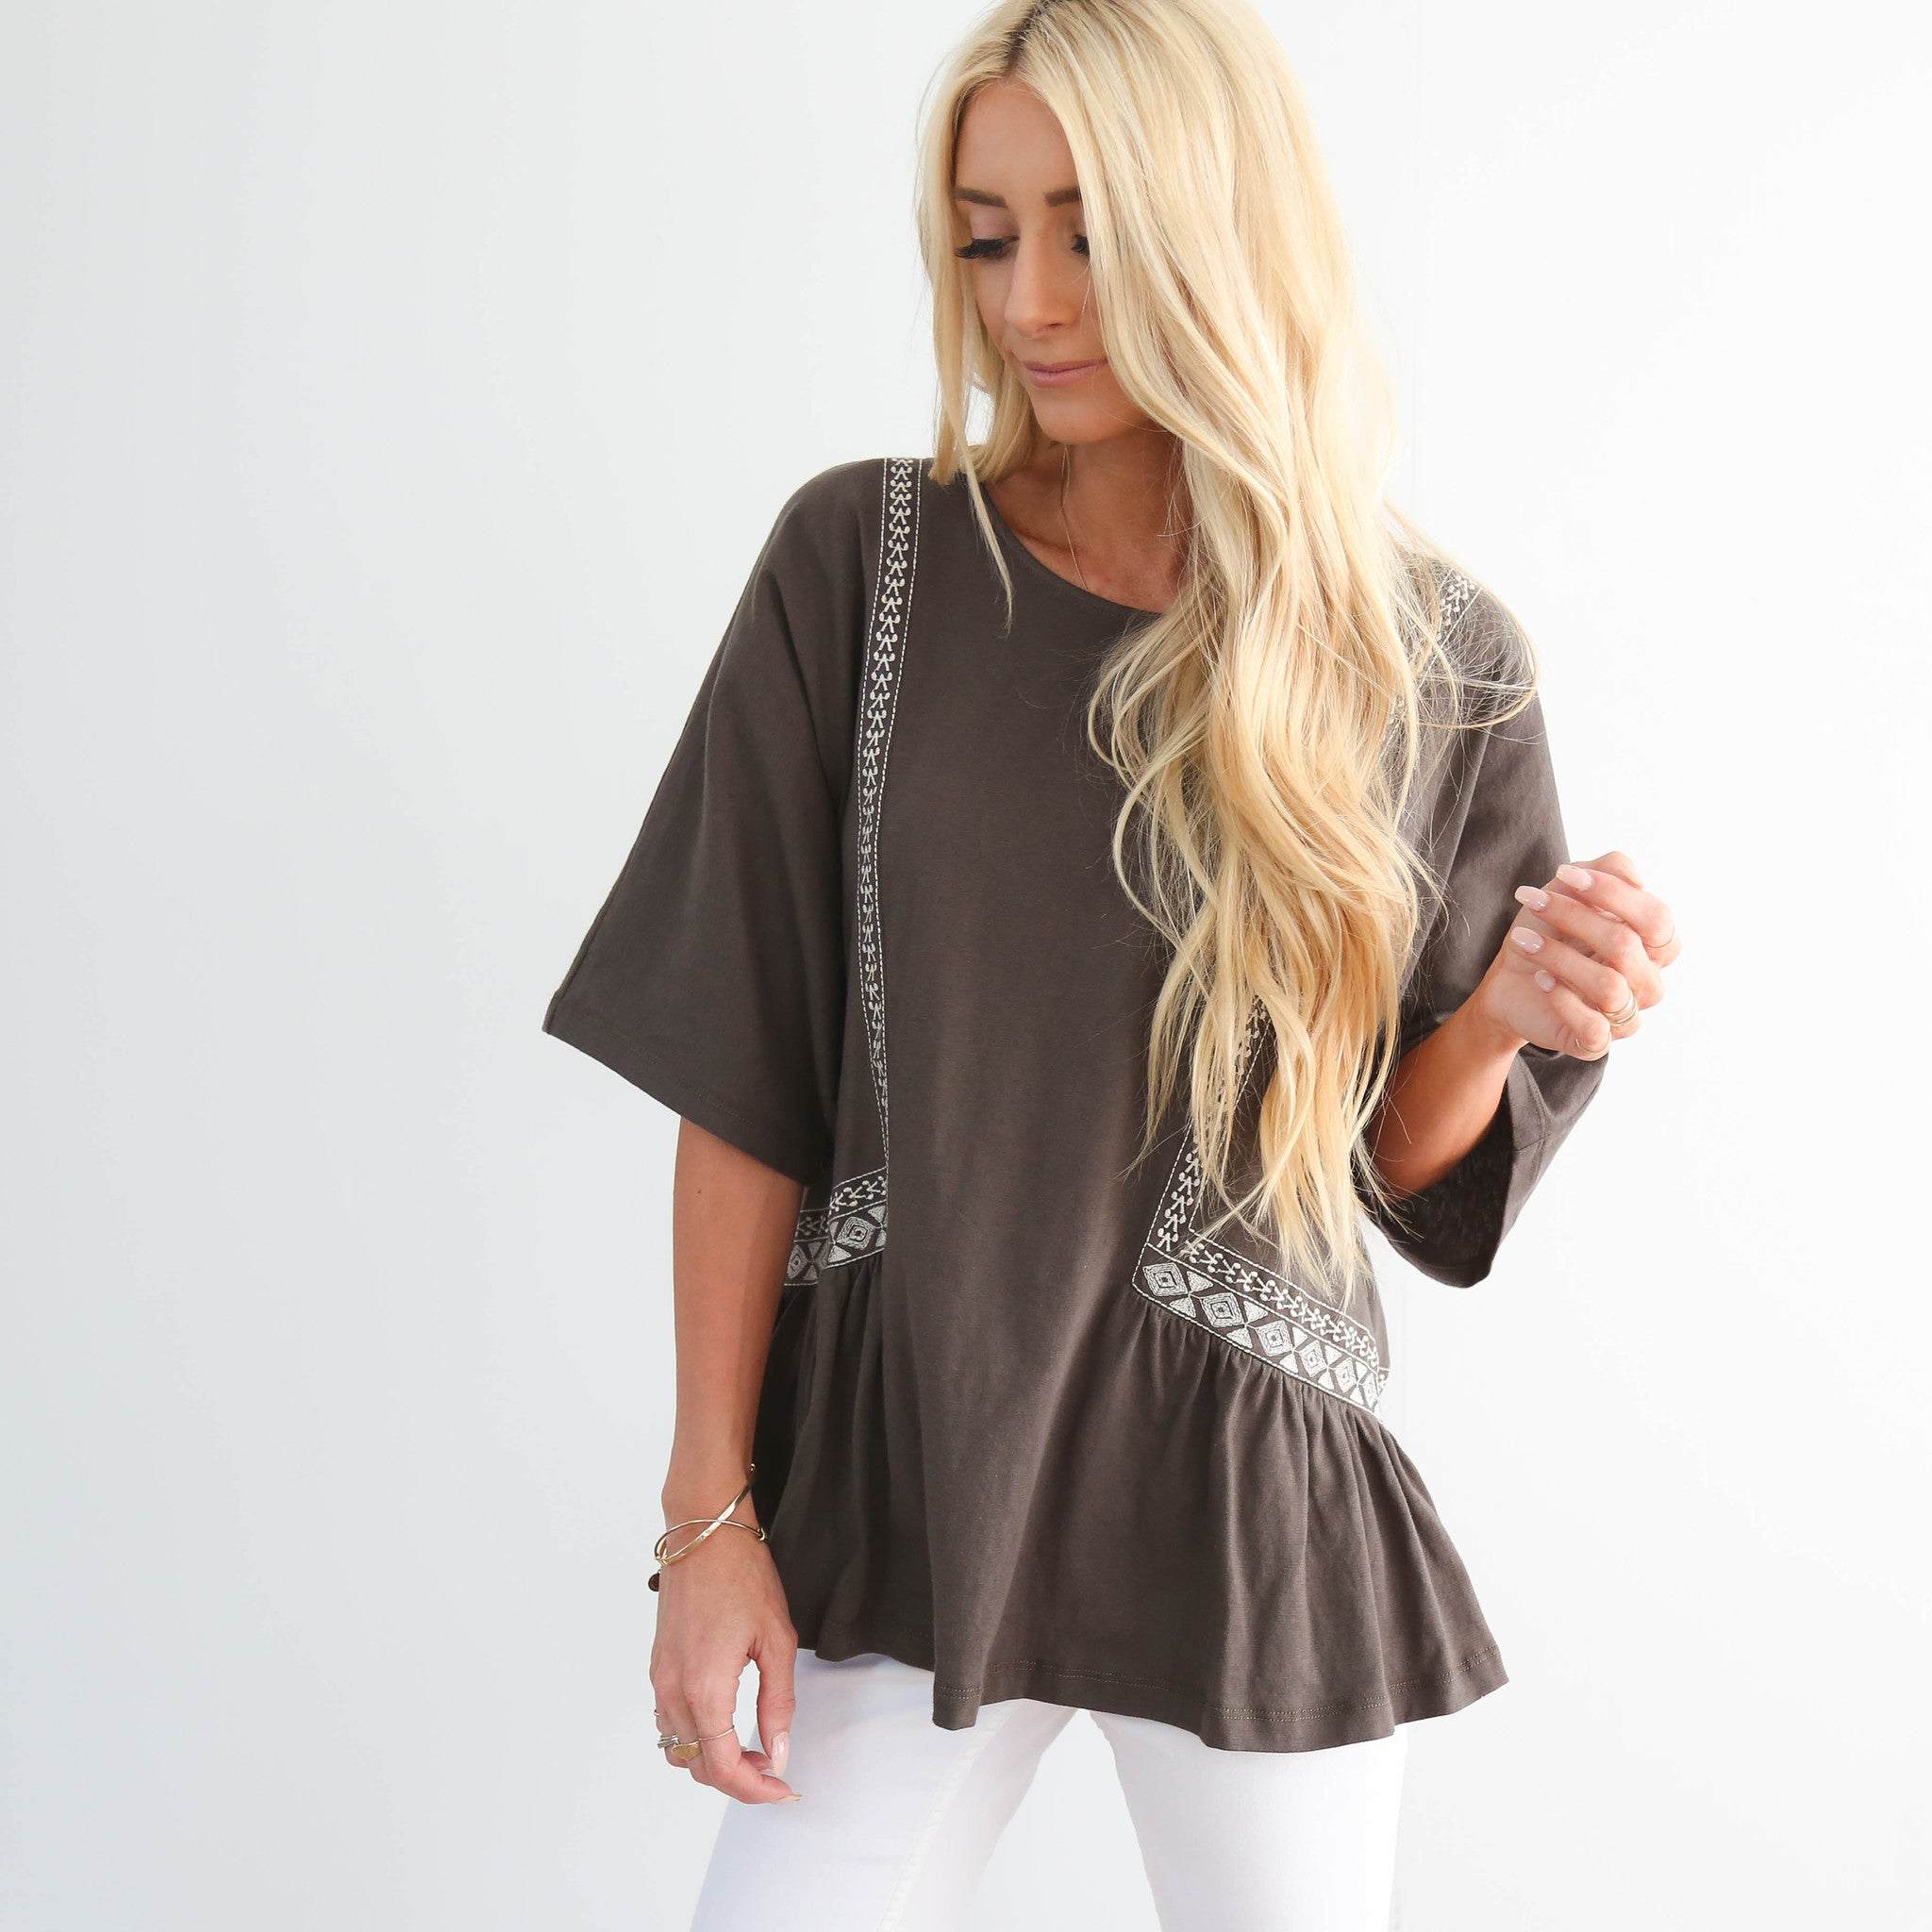 Olive Grey Embroidered Top